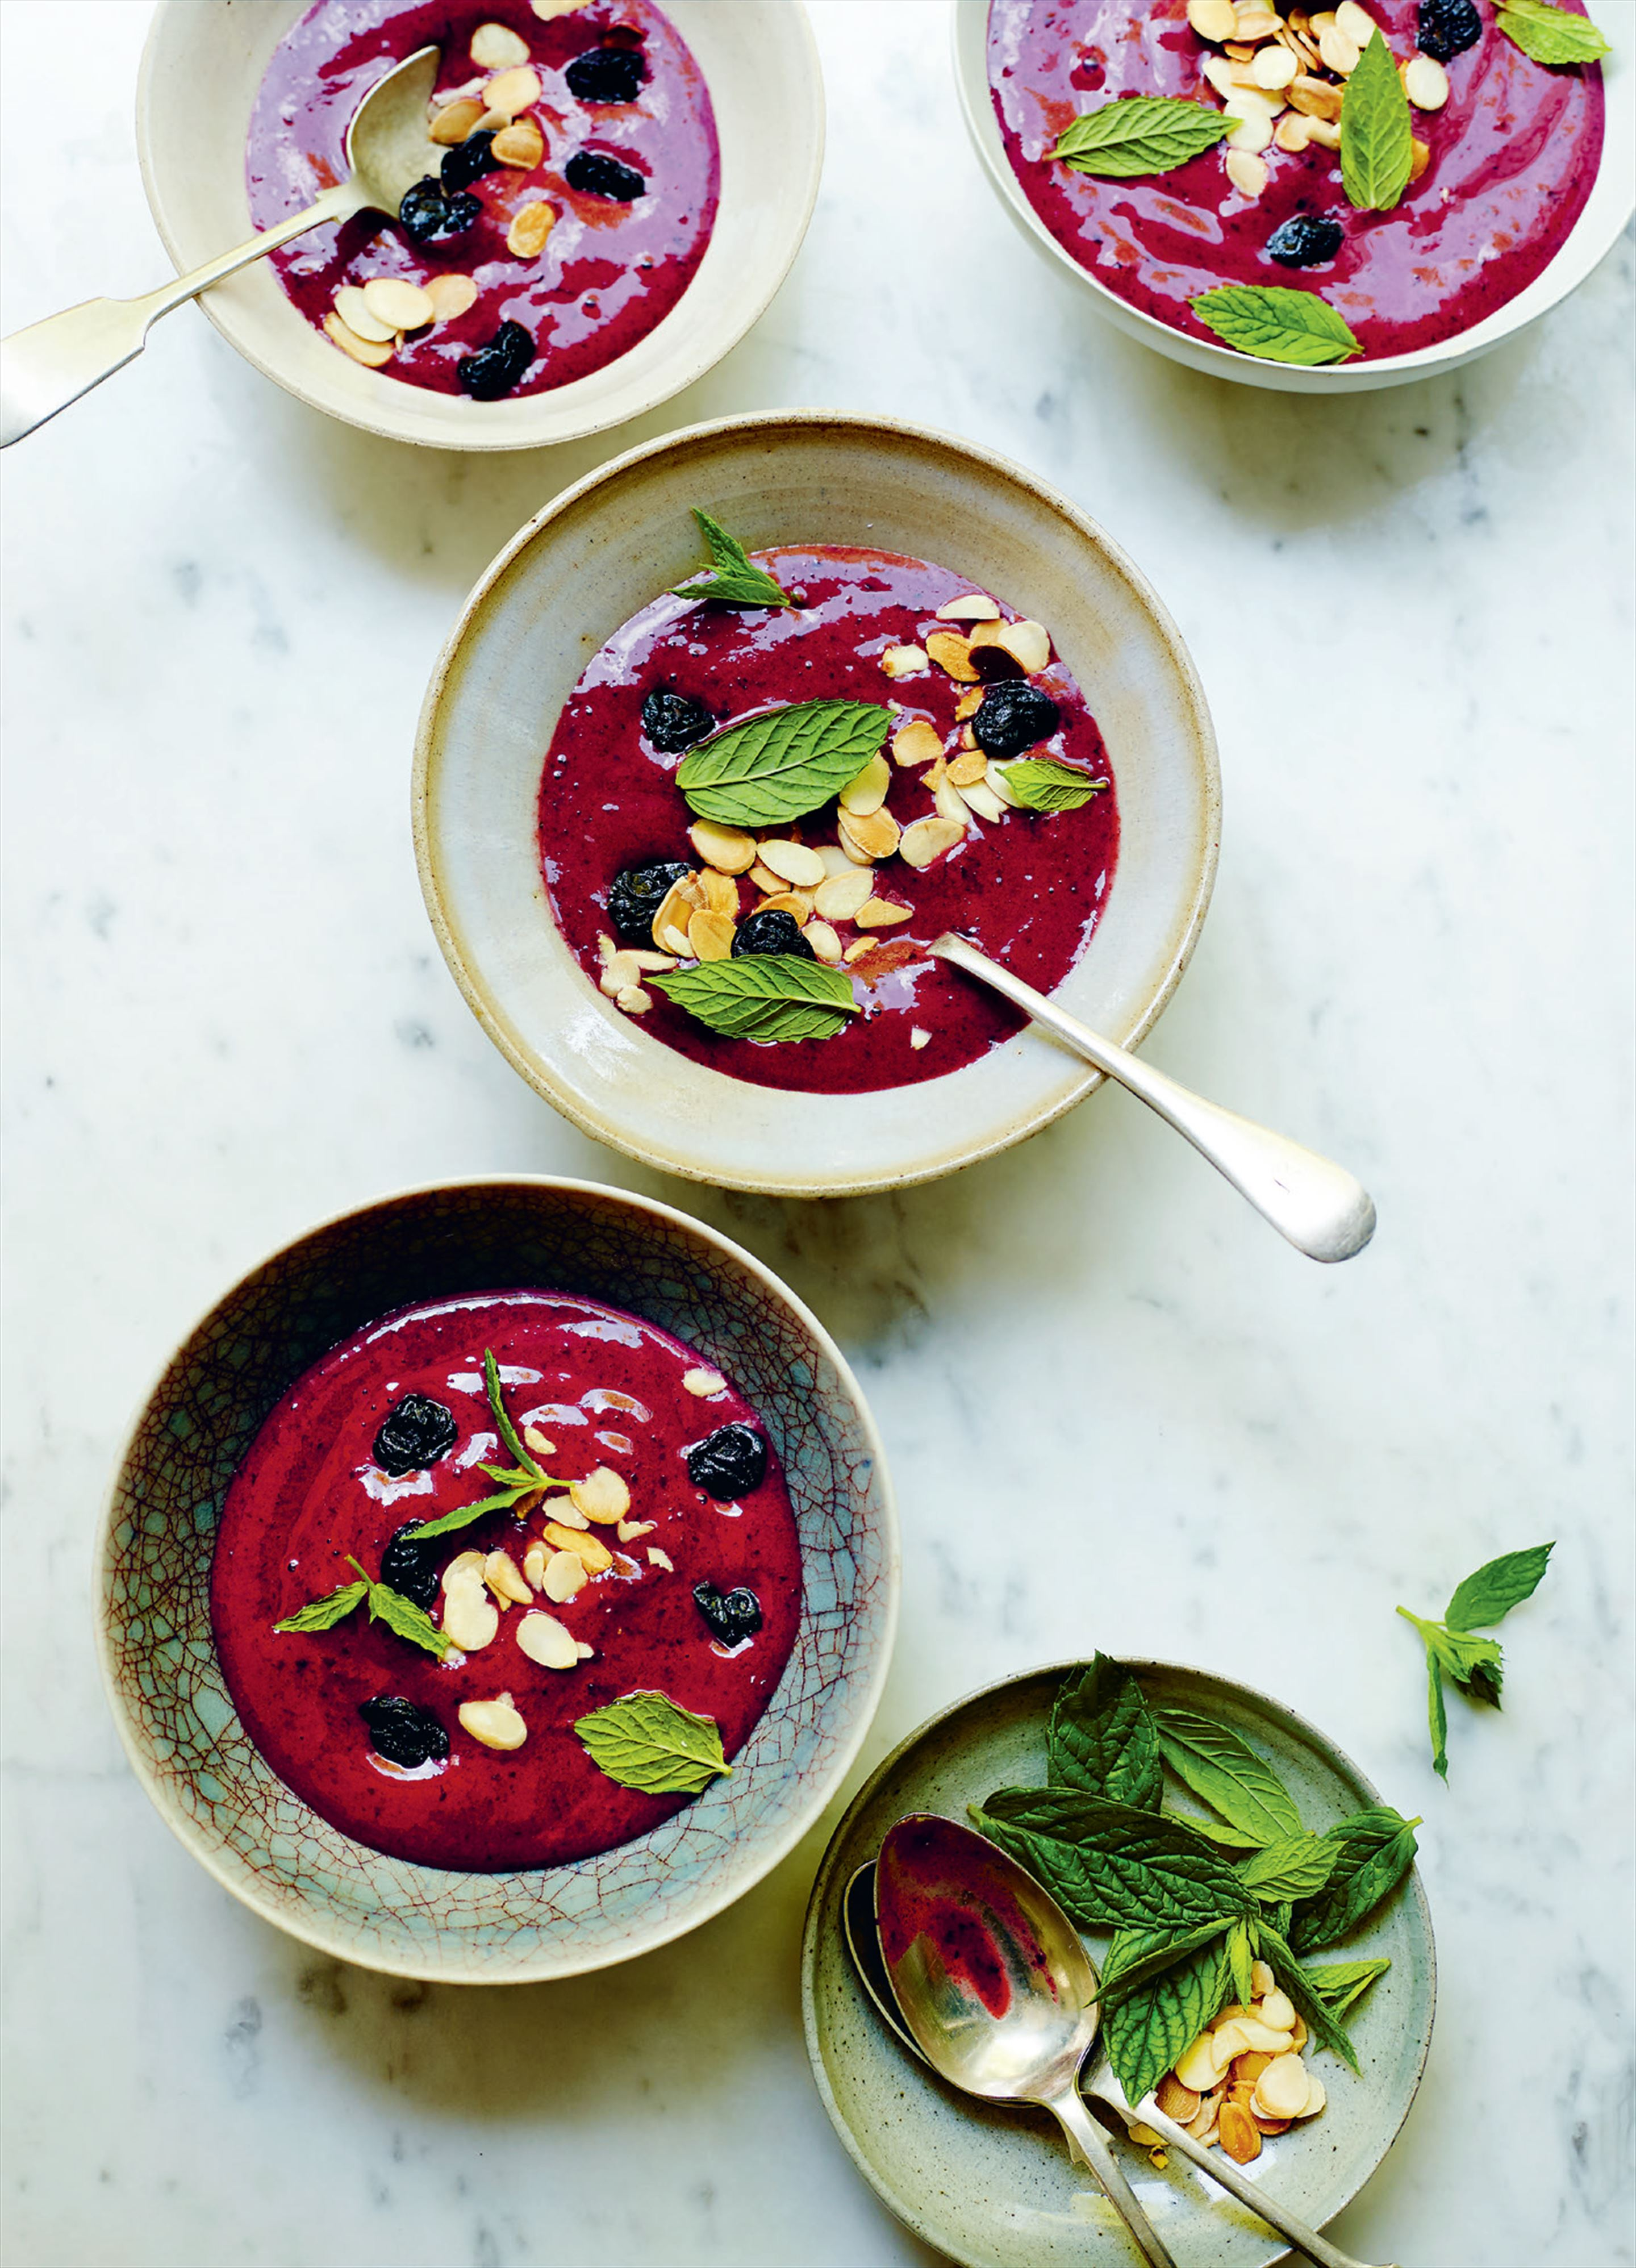 Cherry and garden mint smoothie bowl